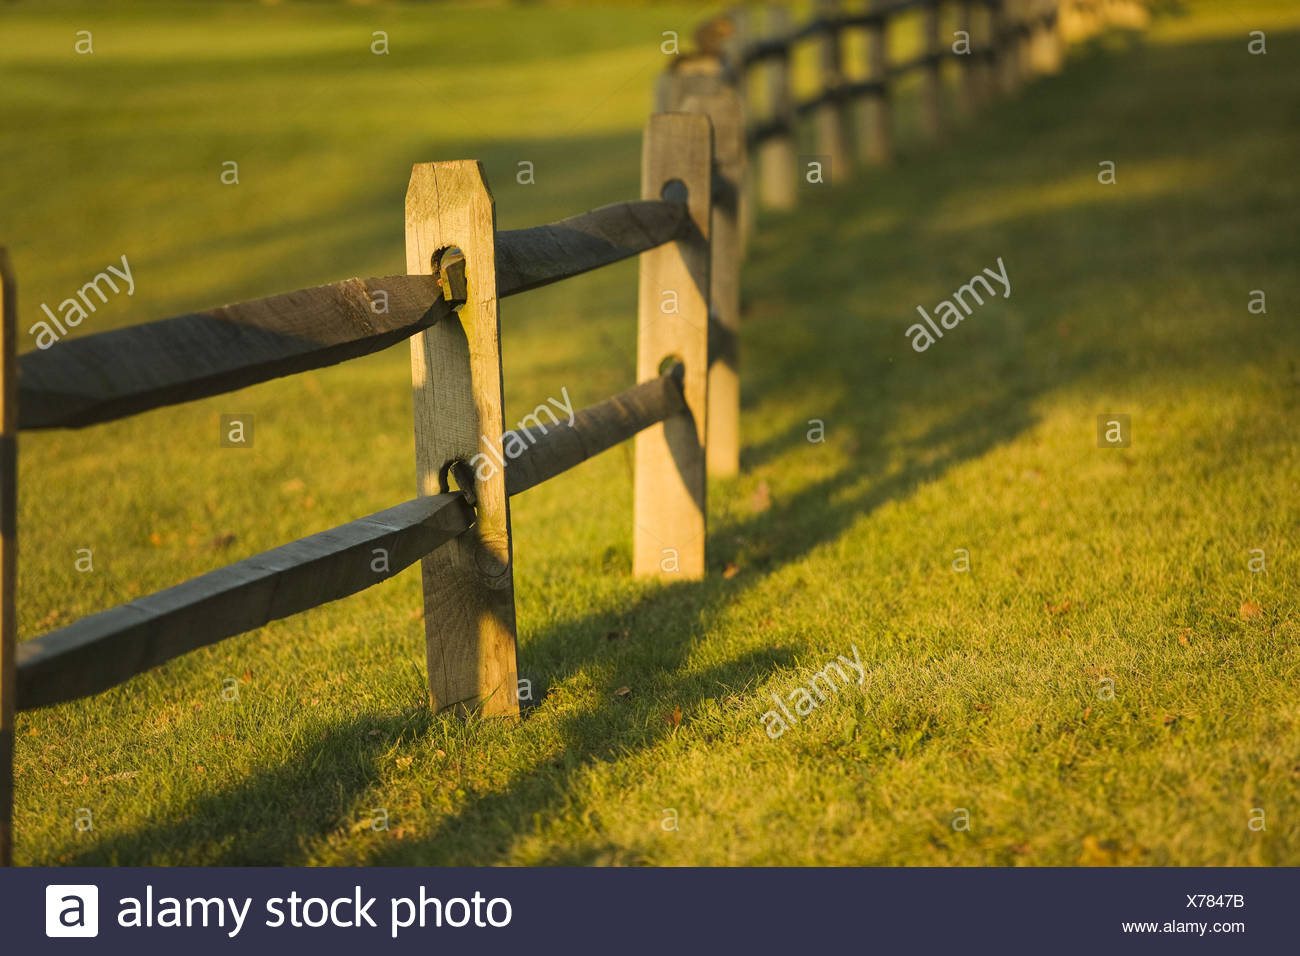 Split rail fence along golf fairway, wooden post and rails  Aurora, Illinois, USA - Stock Image